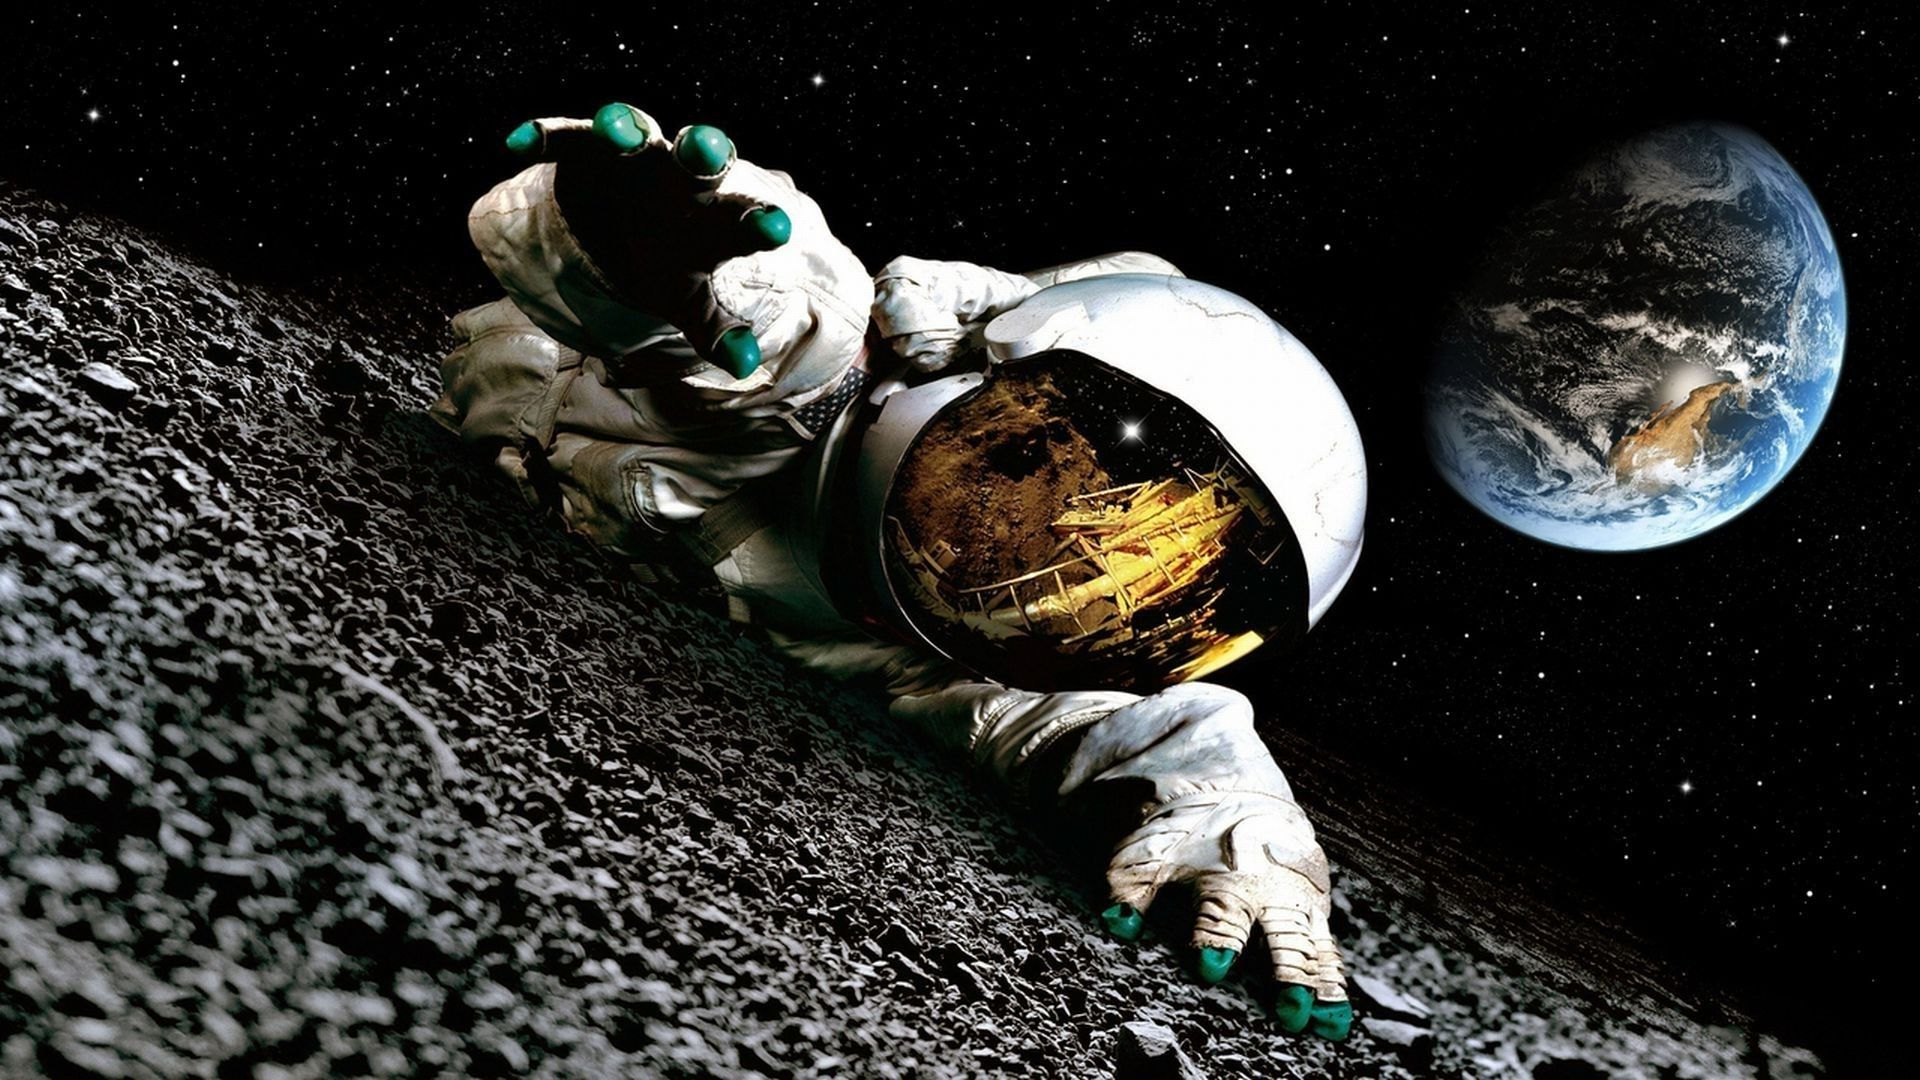 Astronaut Drinking Beer On the Moon HD (page 4) - Pics ...